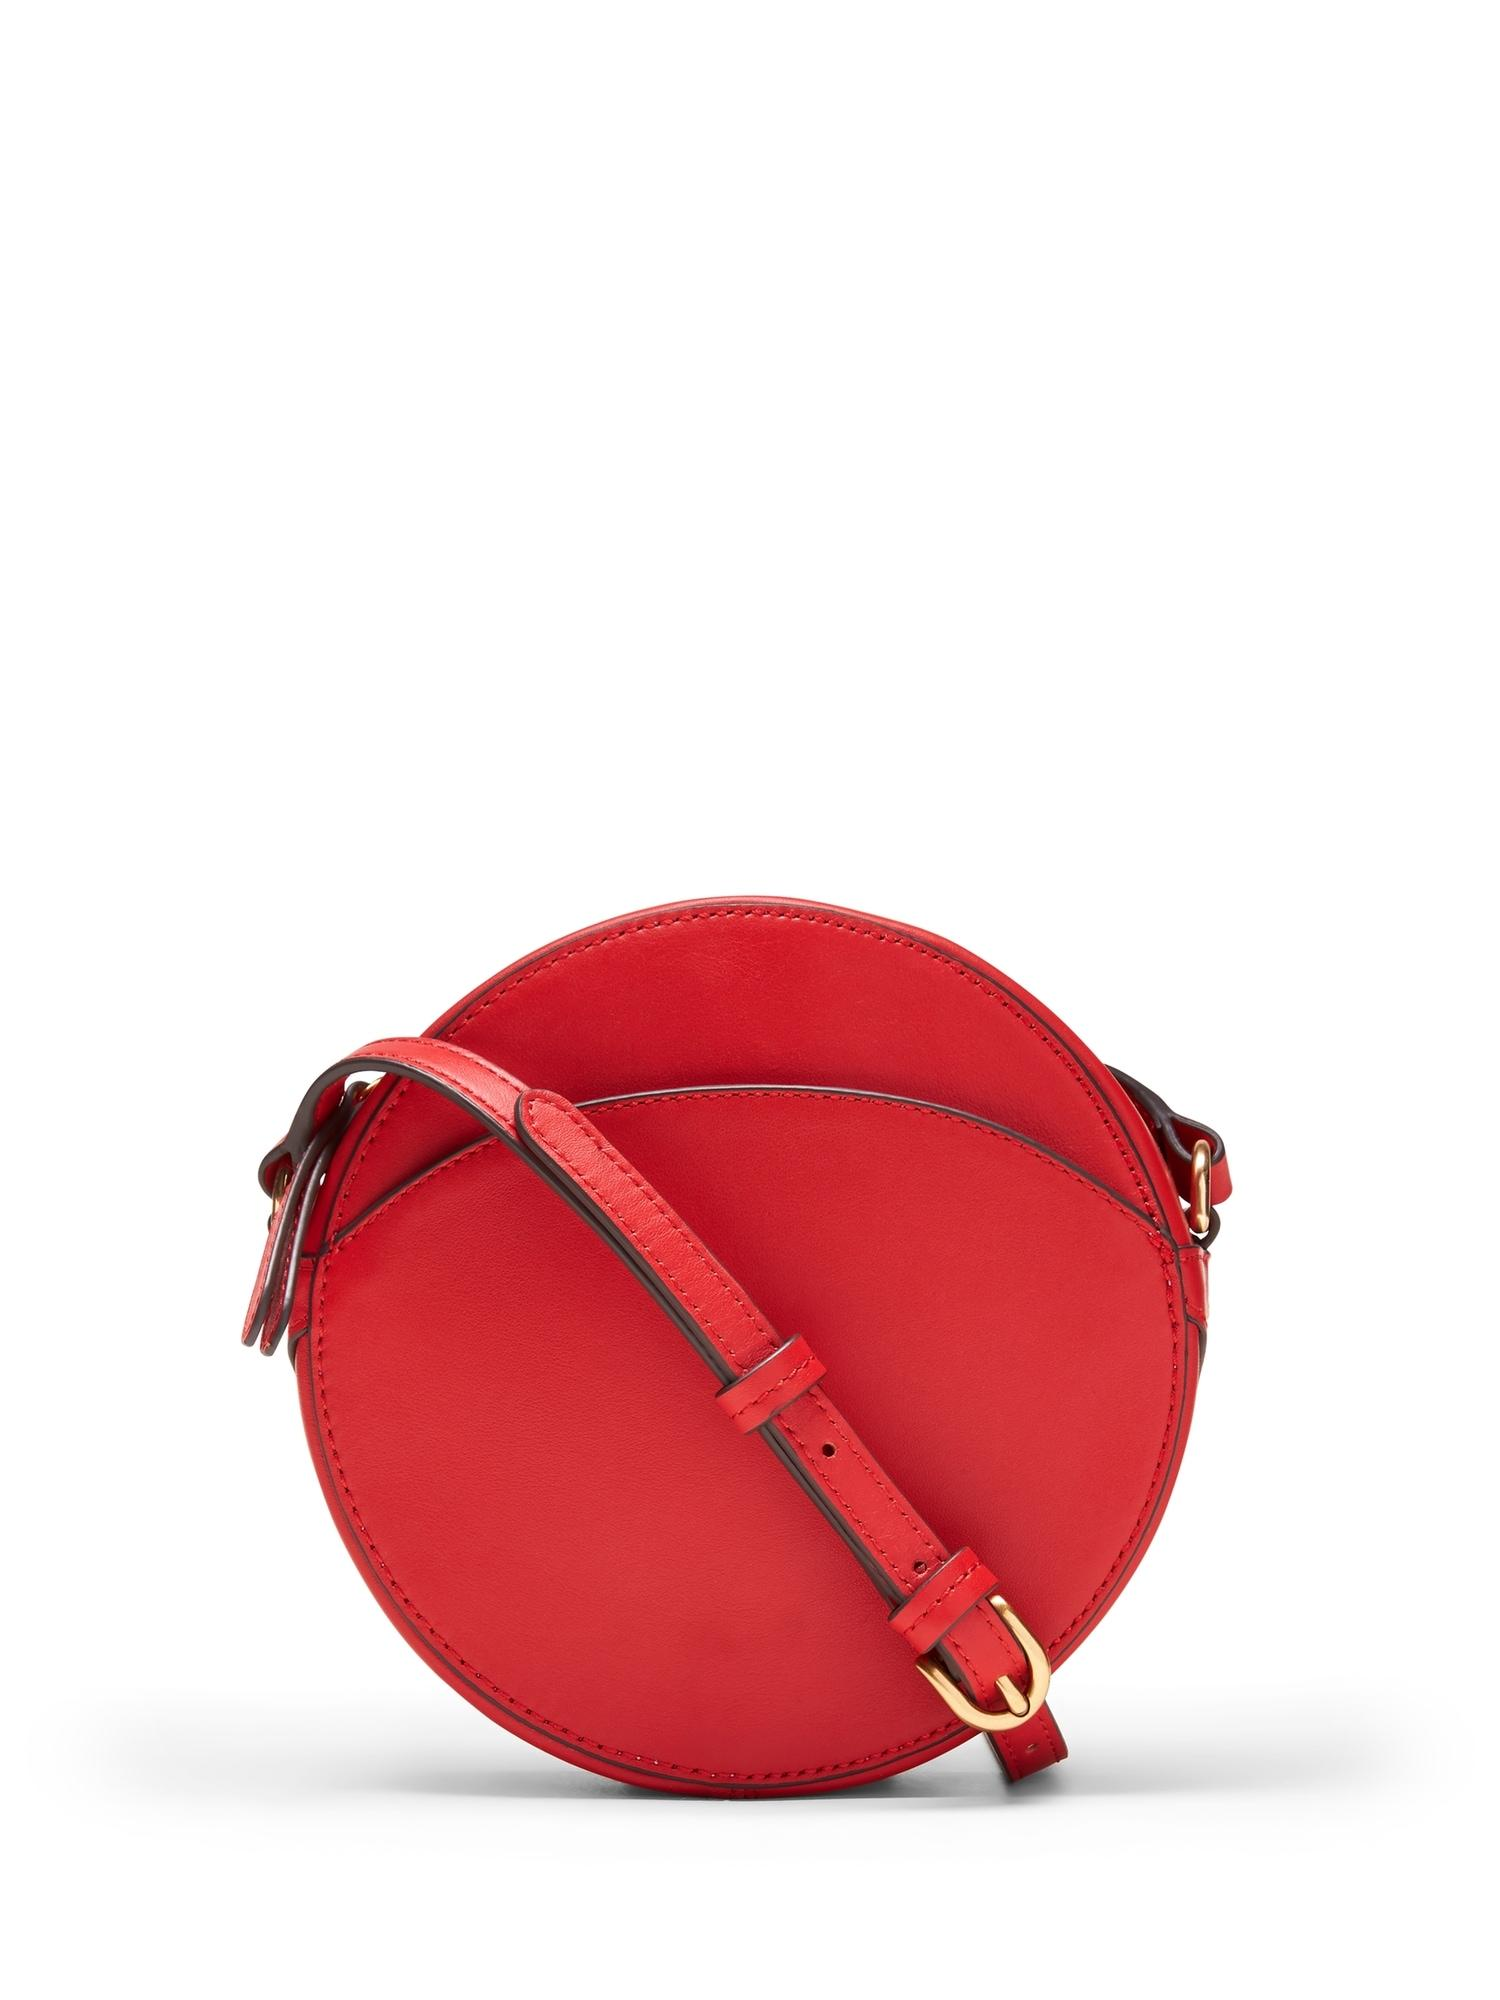 afd1349a29c9 Lyst - Banana Republic Italian Leather Canteen Crossbody Bag in Red